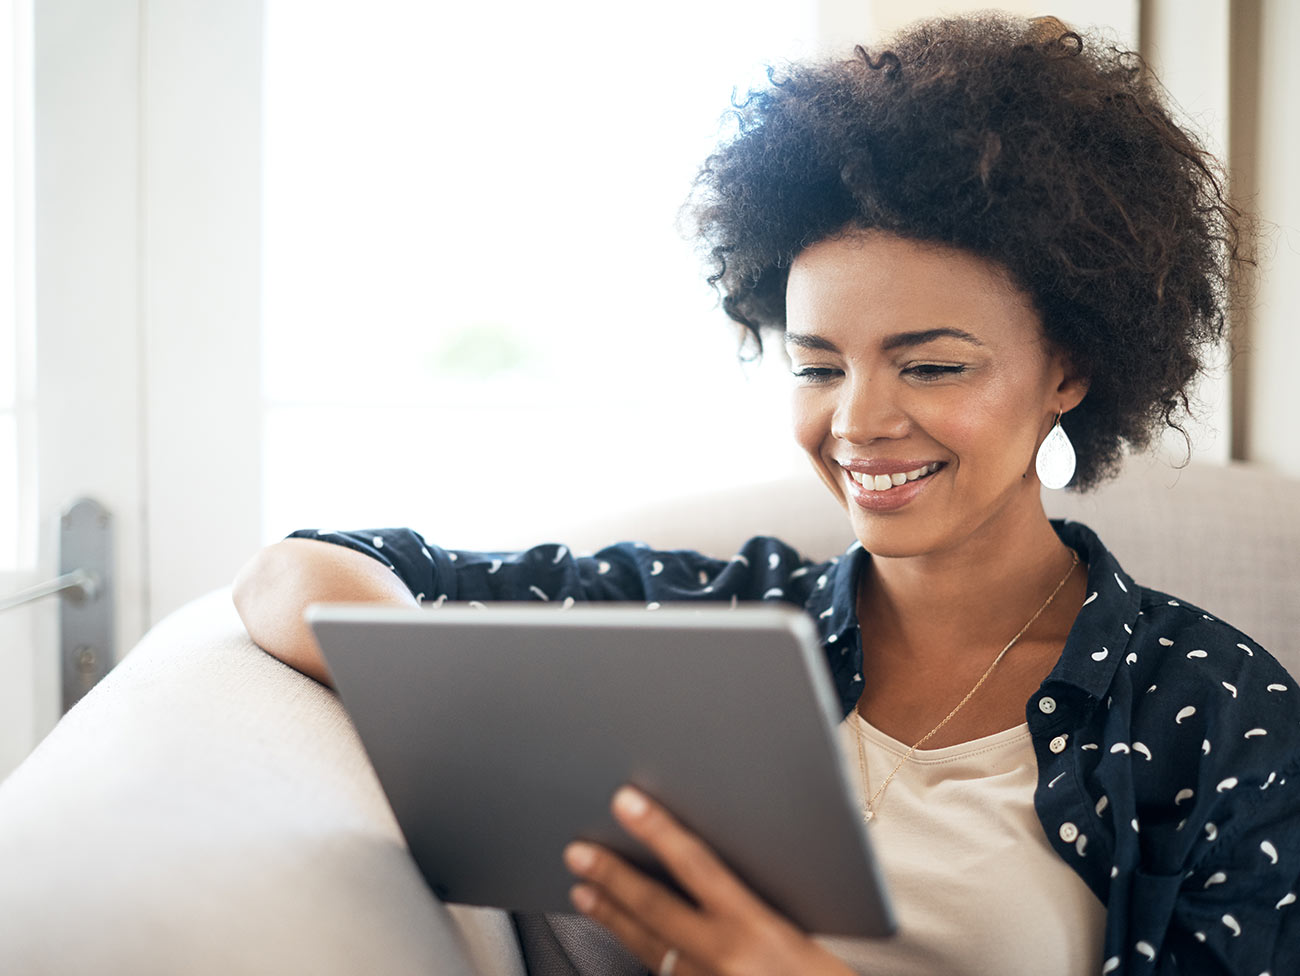 woman sitting on sofa looking at her tablet computer and smiling